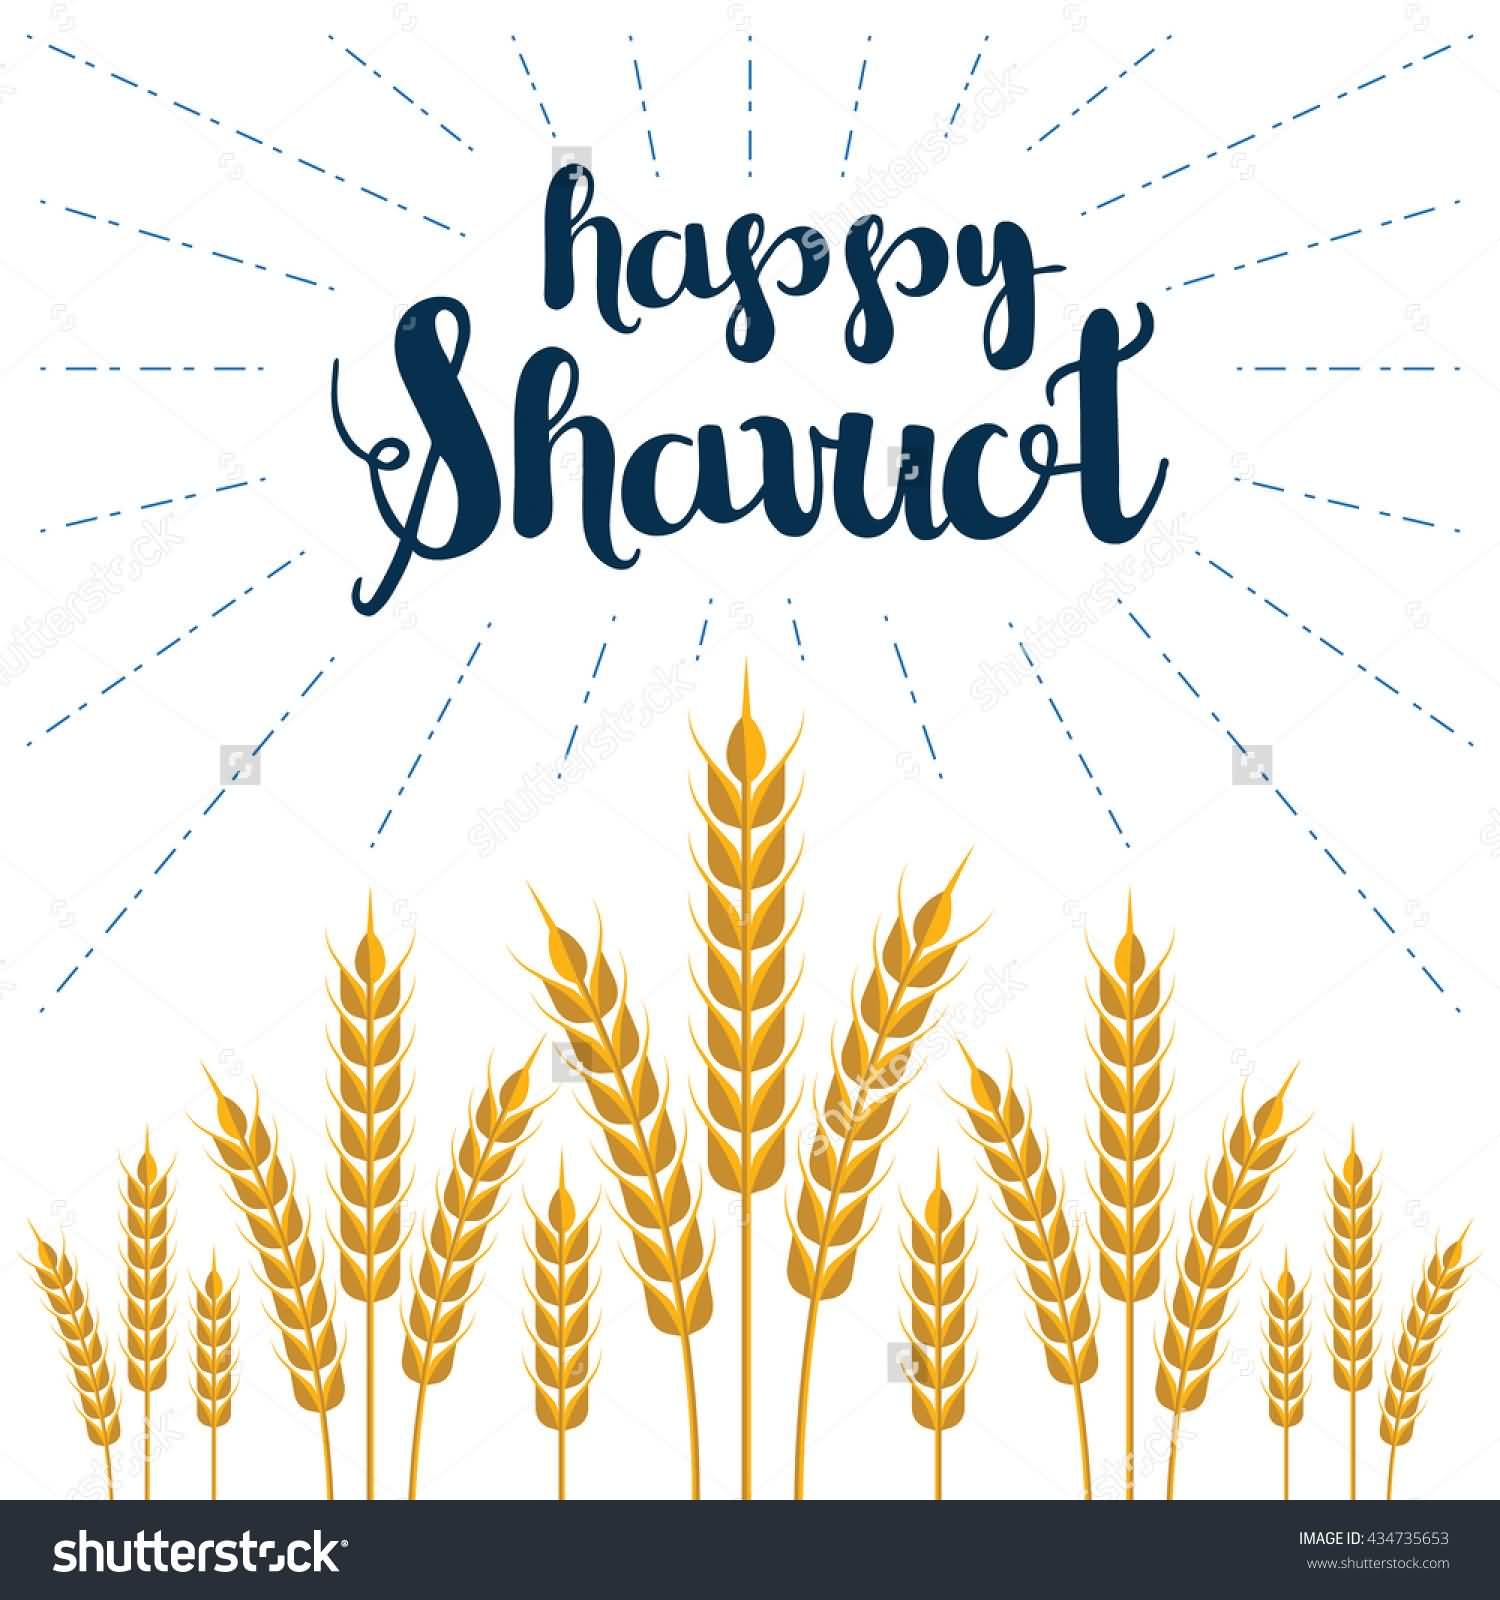 Happy Shavuot Wheat Illustration Card